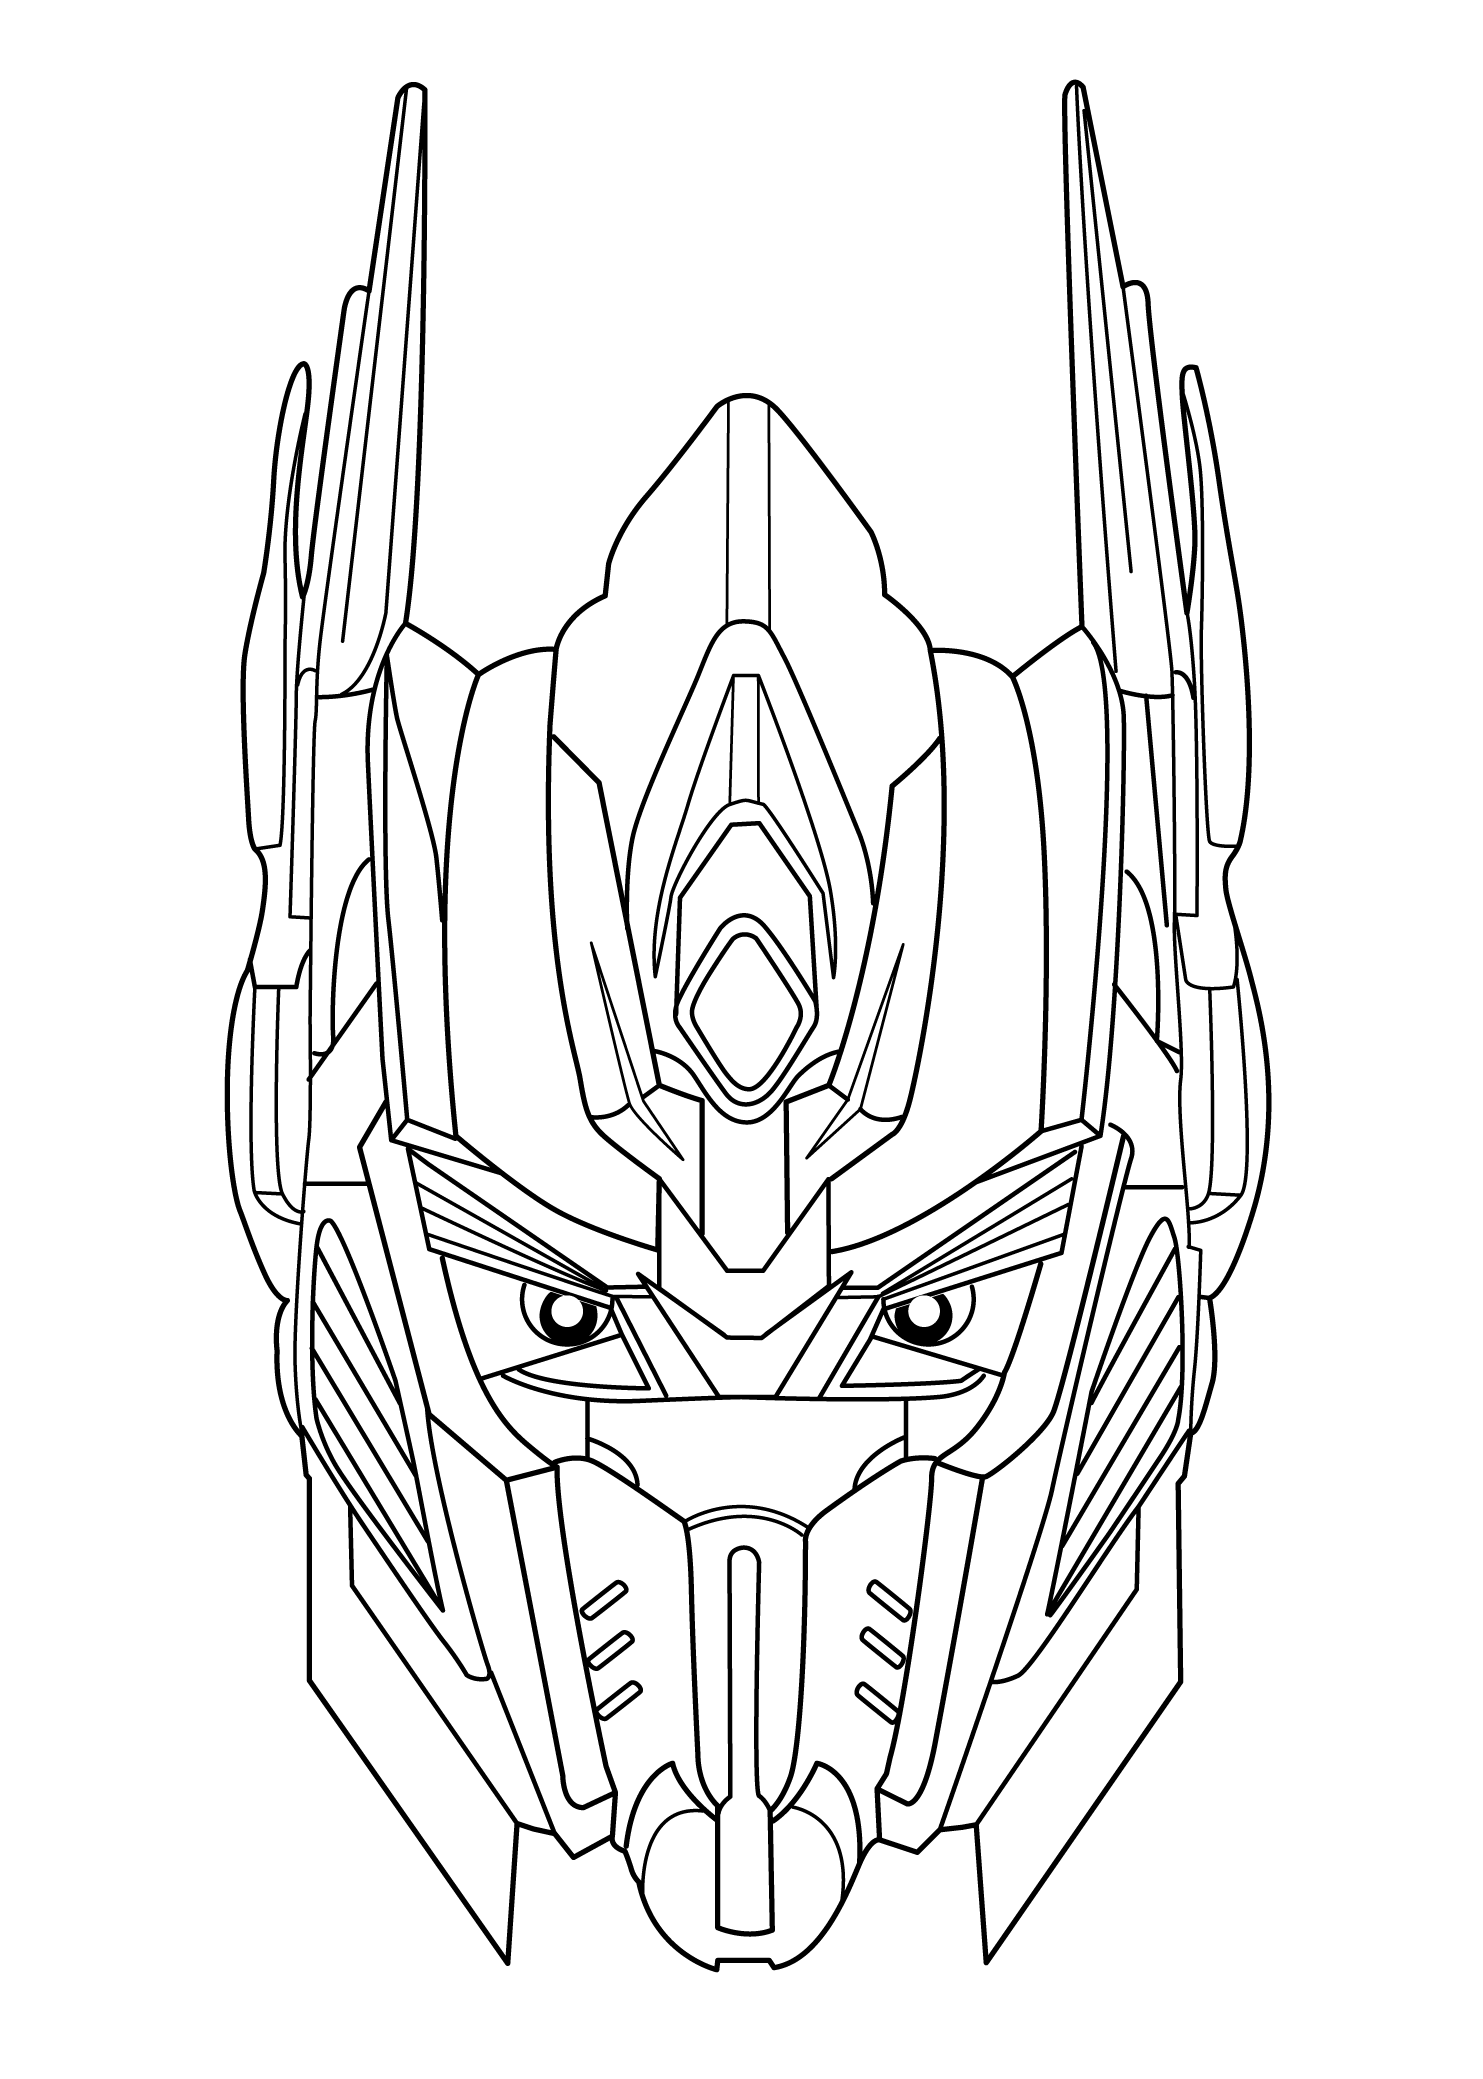 Transformers coloring pages for kids free printable | fun ...